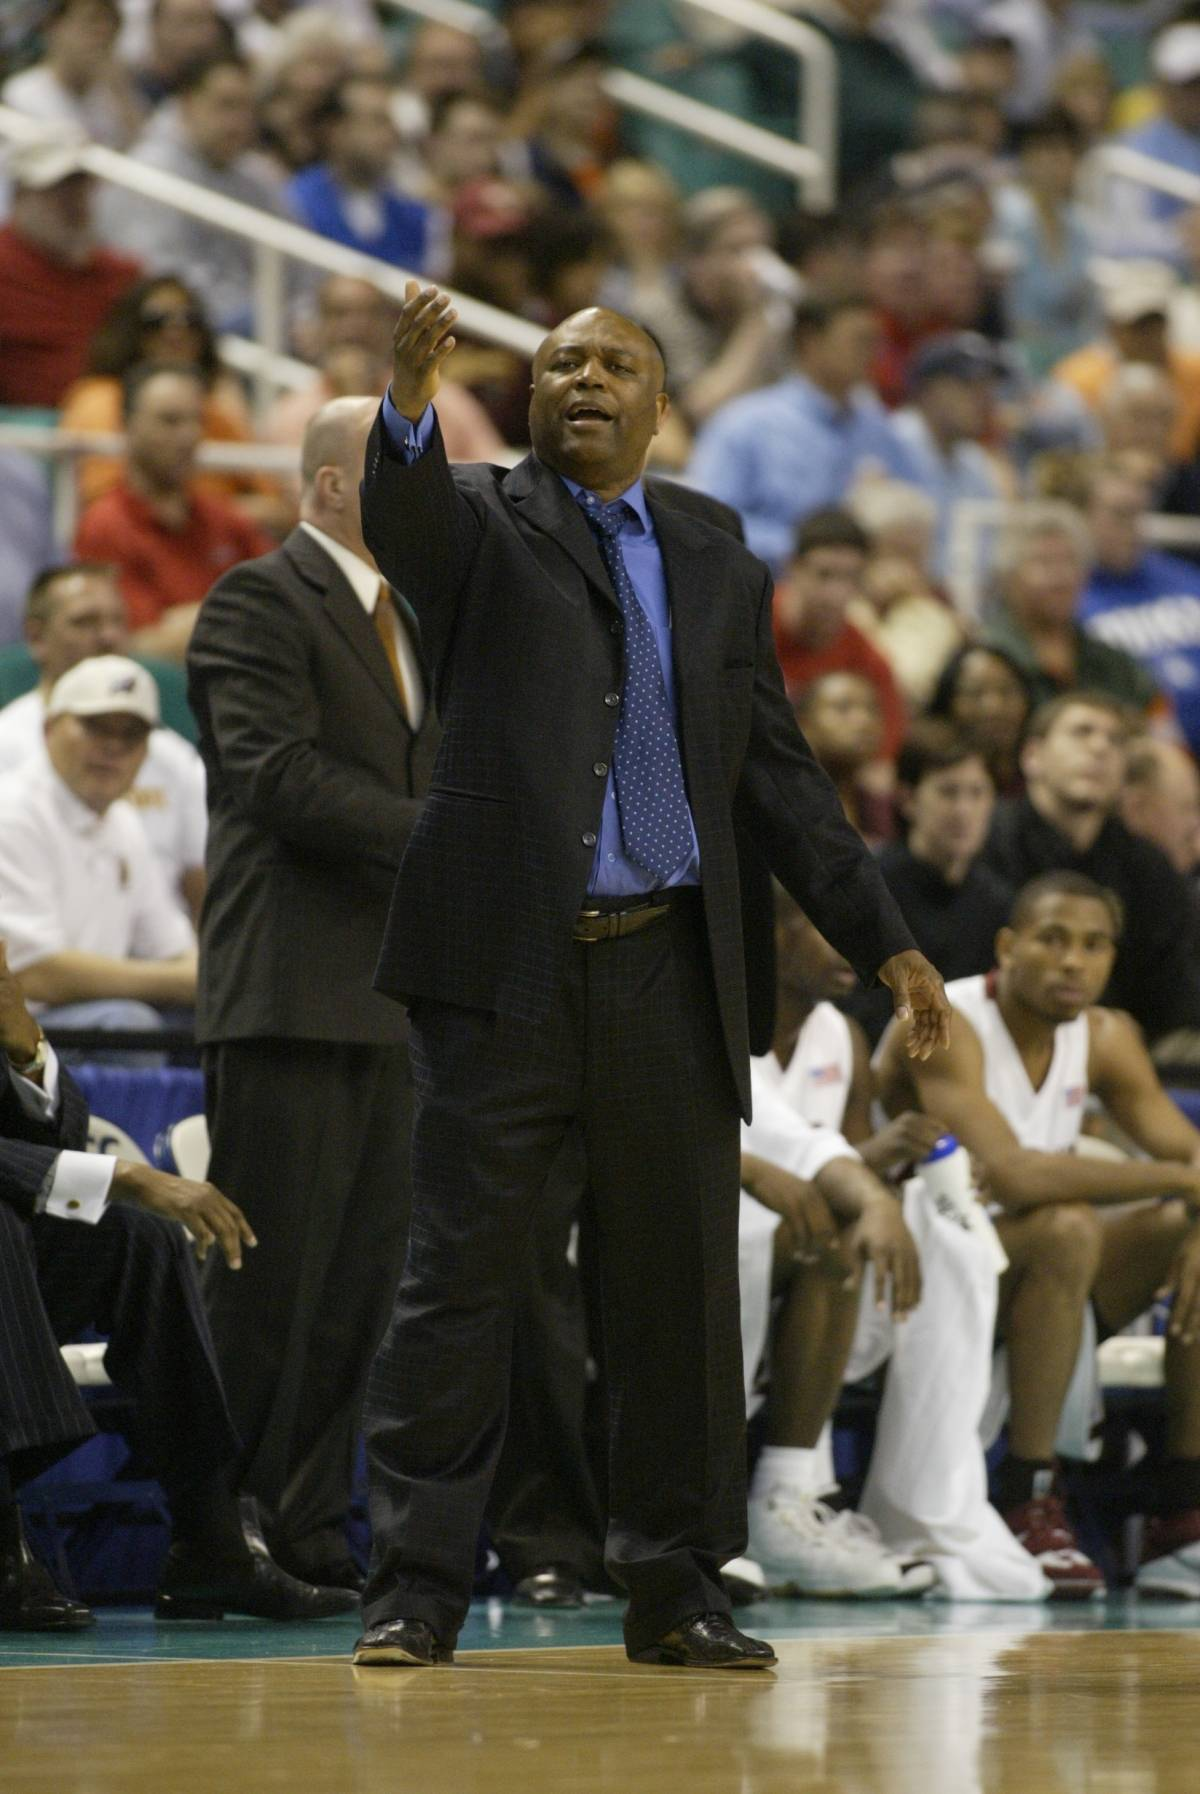 October 31, 2006: Head Coach Leonard Hamilton and the Seminoles open the Basketball#$%^season with an exhibition game against Spring Hill College Tuesday at#$%^7 p.m. in the Donald L. Tucker Center.